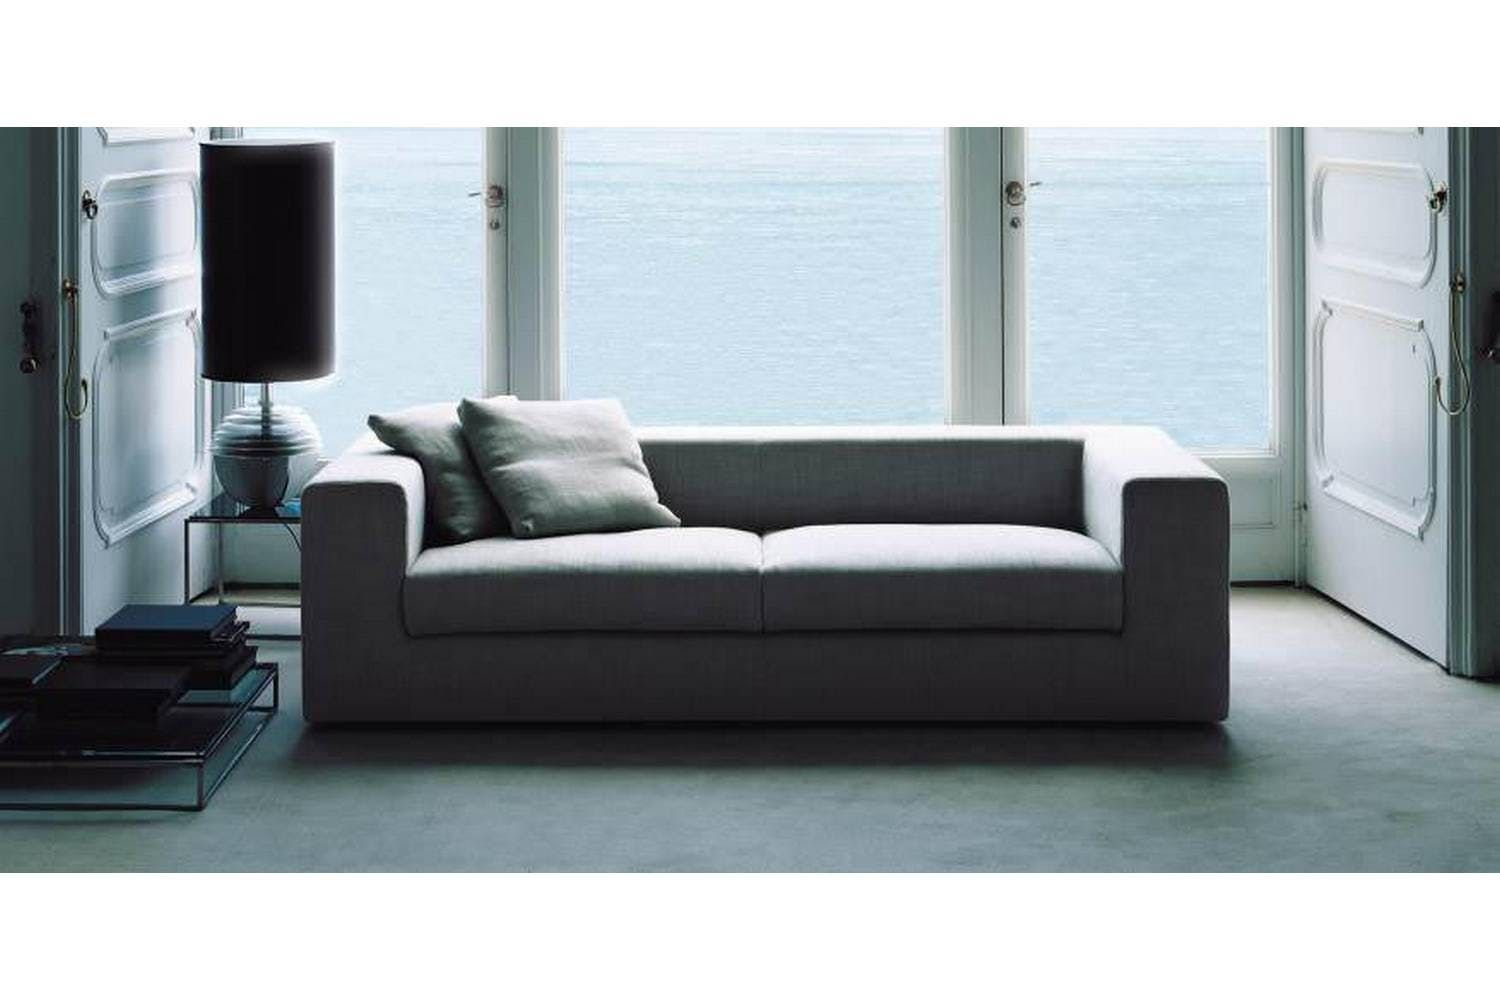 Living Divani Neowall Sofa Bed Wall Sofa Bed By Piero Lissoni For Living Divani Space